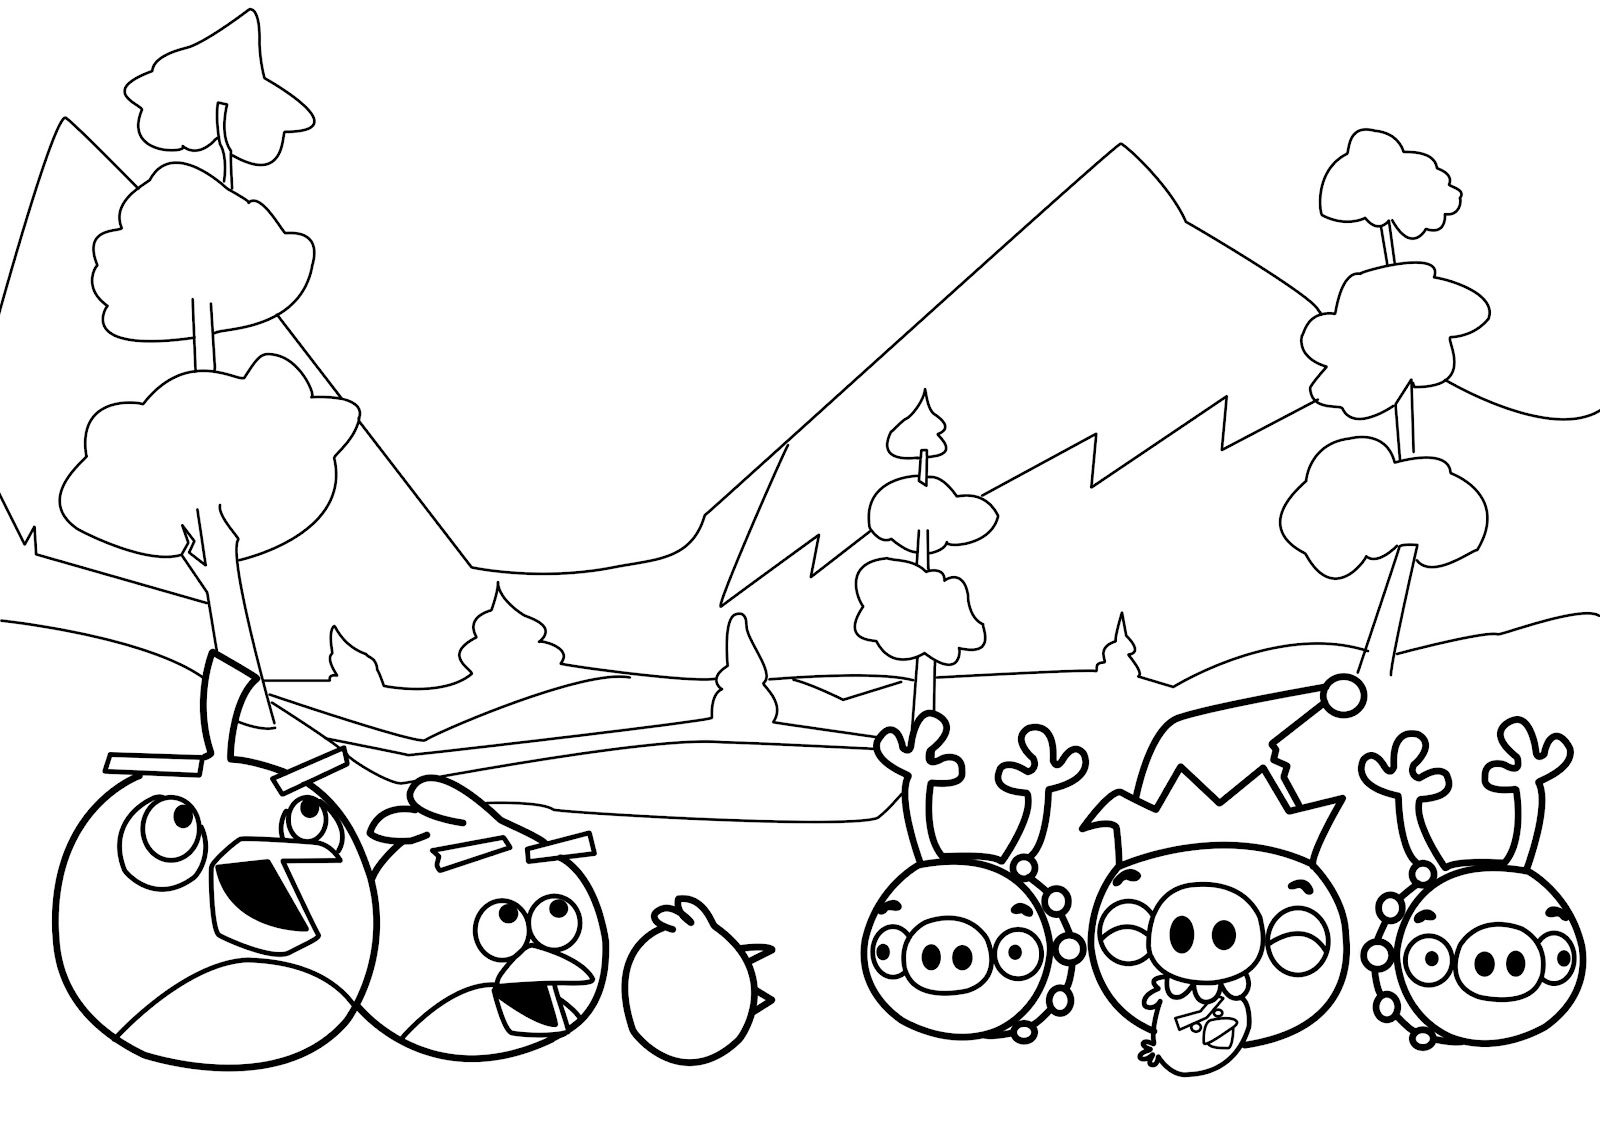 Christmas-Birds-Coloring-Pages-for-Kids